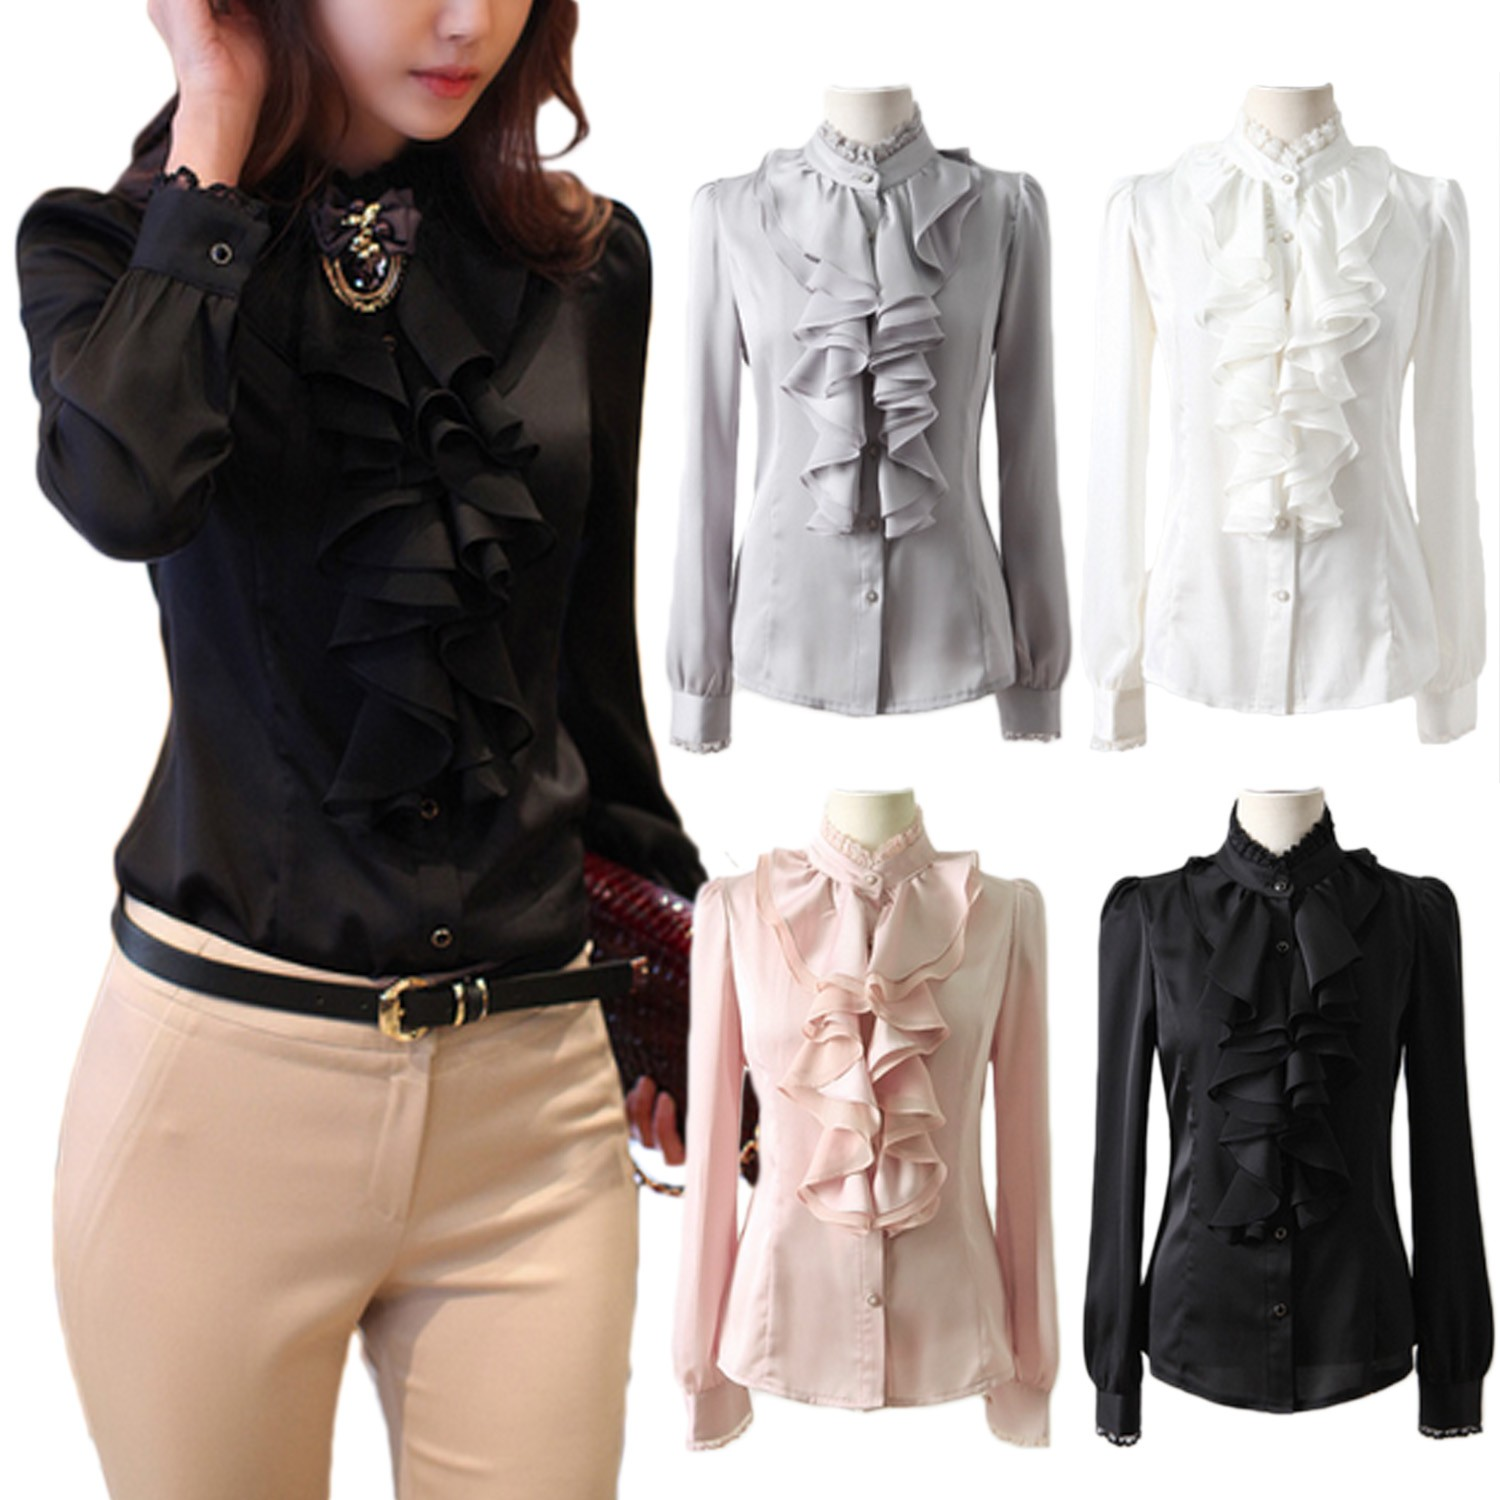 Lace Collar Ruffle Satin Shirt Top - 4010#